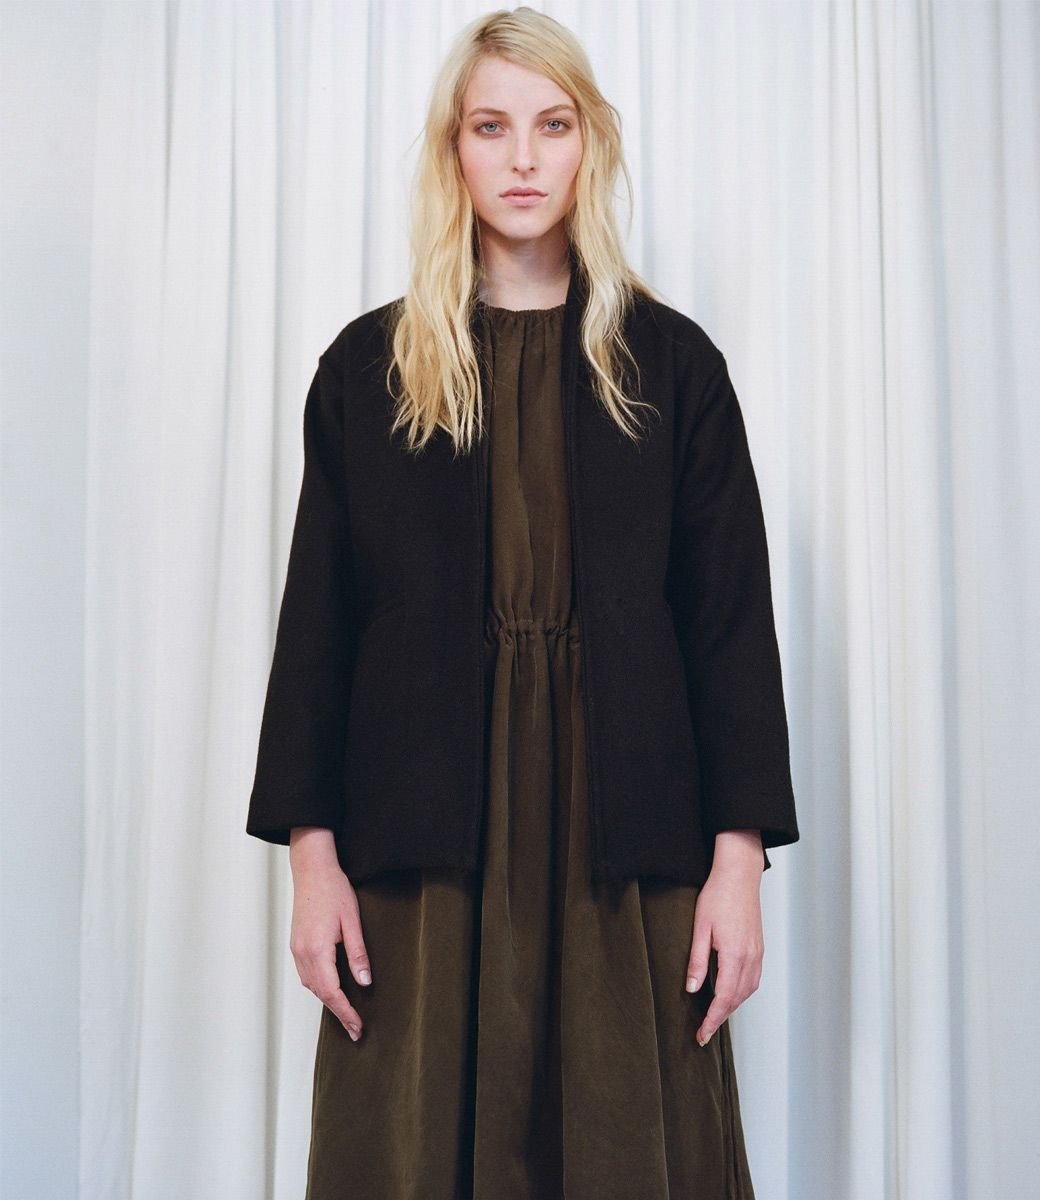 OM-FW-15 / Objects Without Meaning | Fashion, Indie style